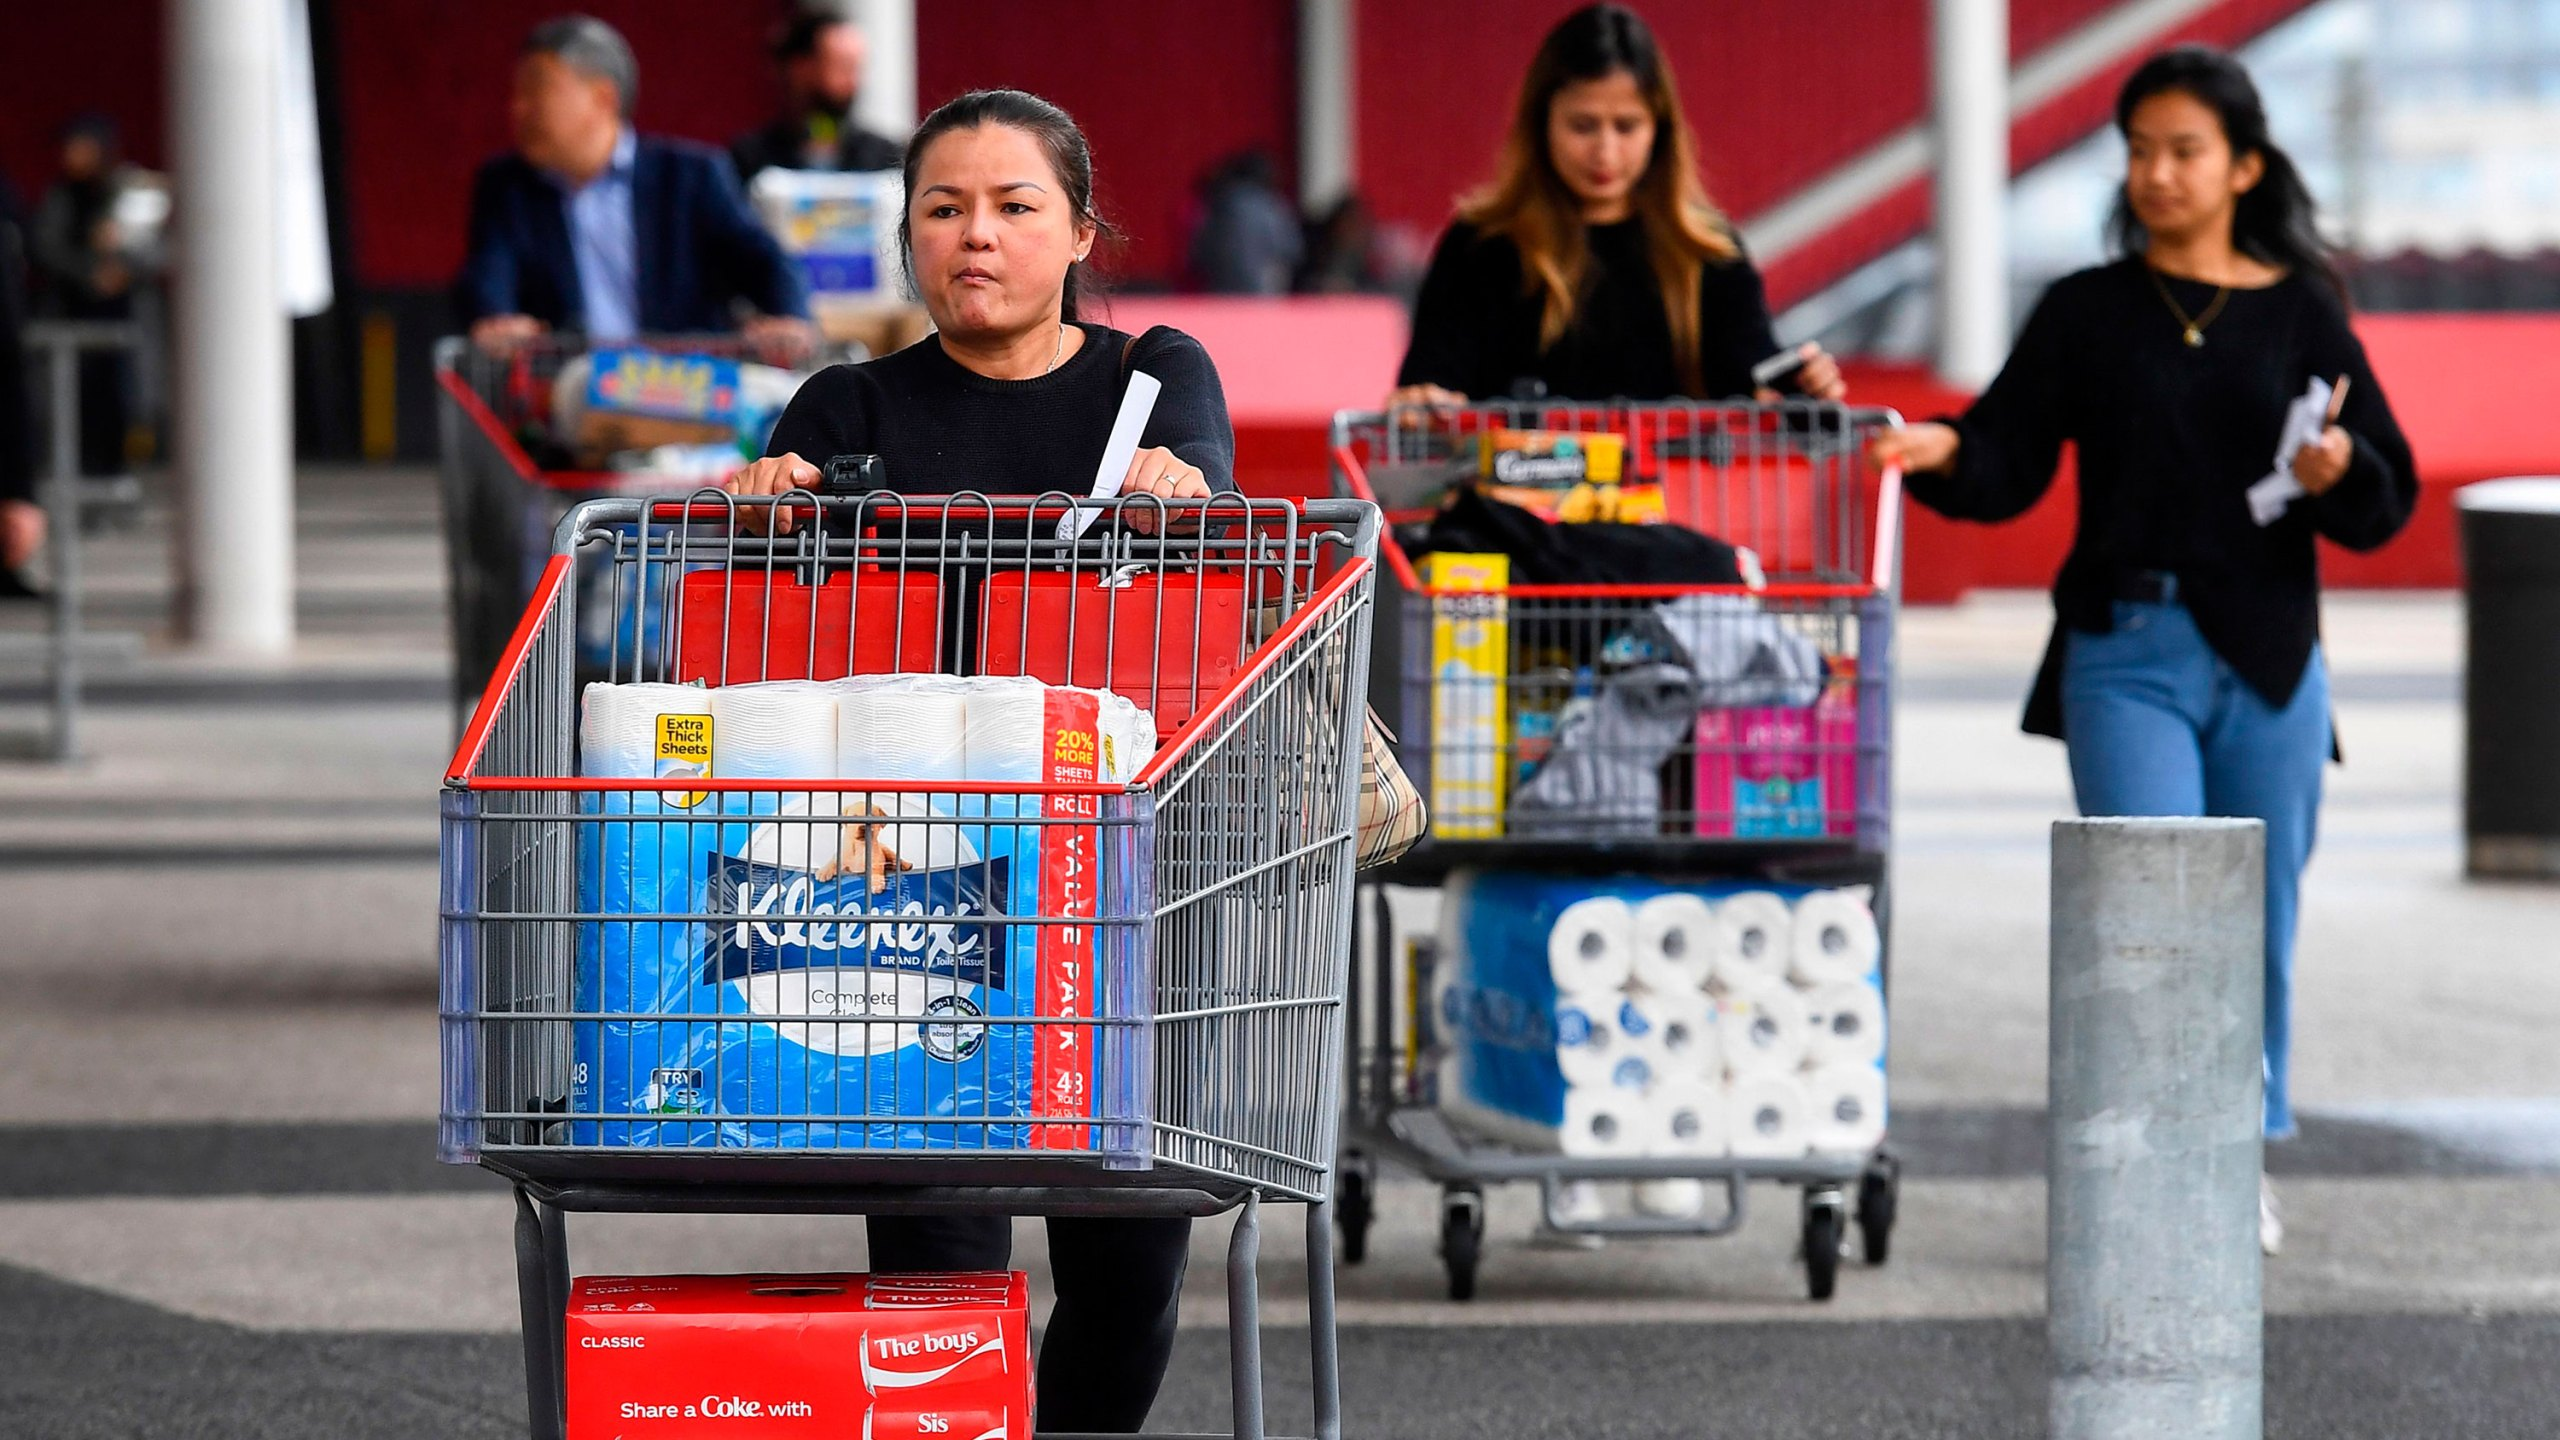 People leave a Costco warehouse with rolls of toilet paper amongst their groceries in Melbourne on March 5, 2020. (William West/AFP/Getty Images via CNN Wire)